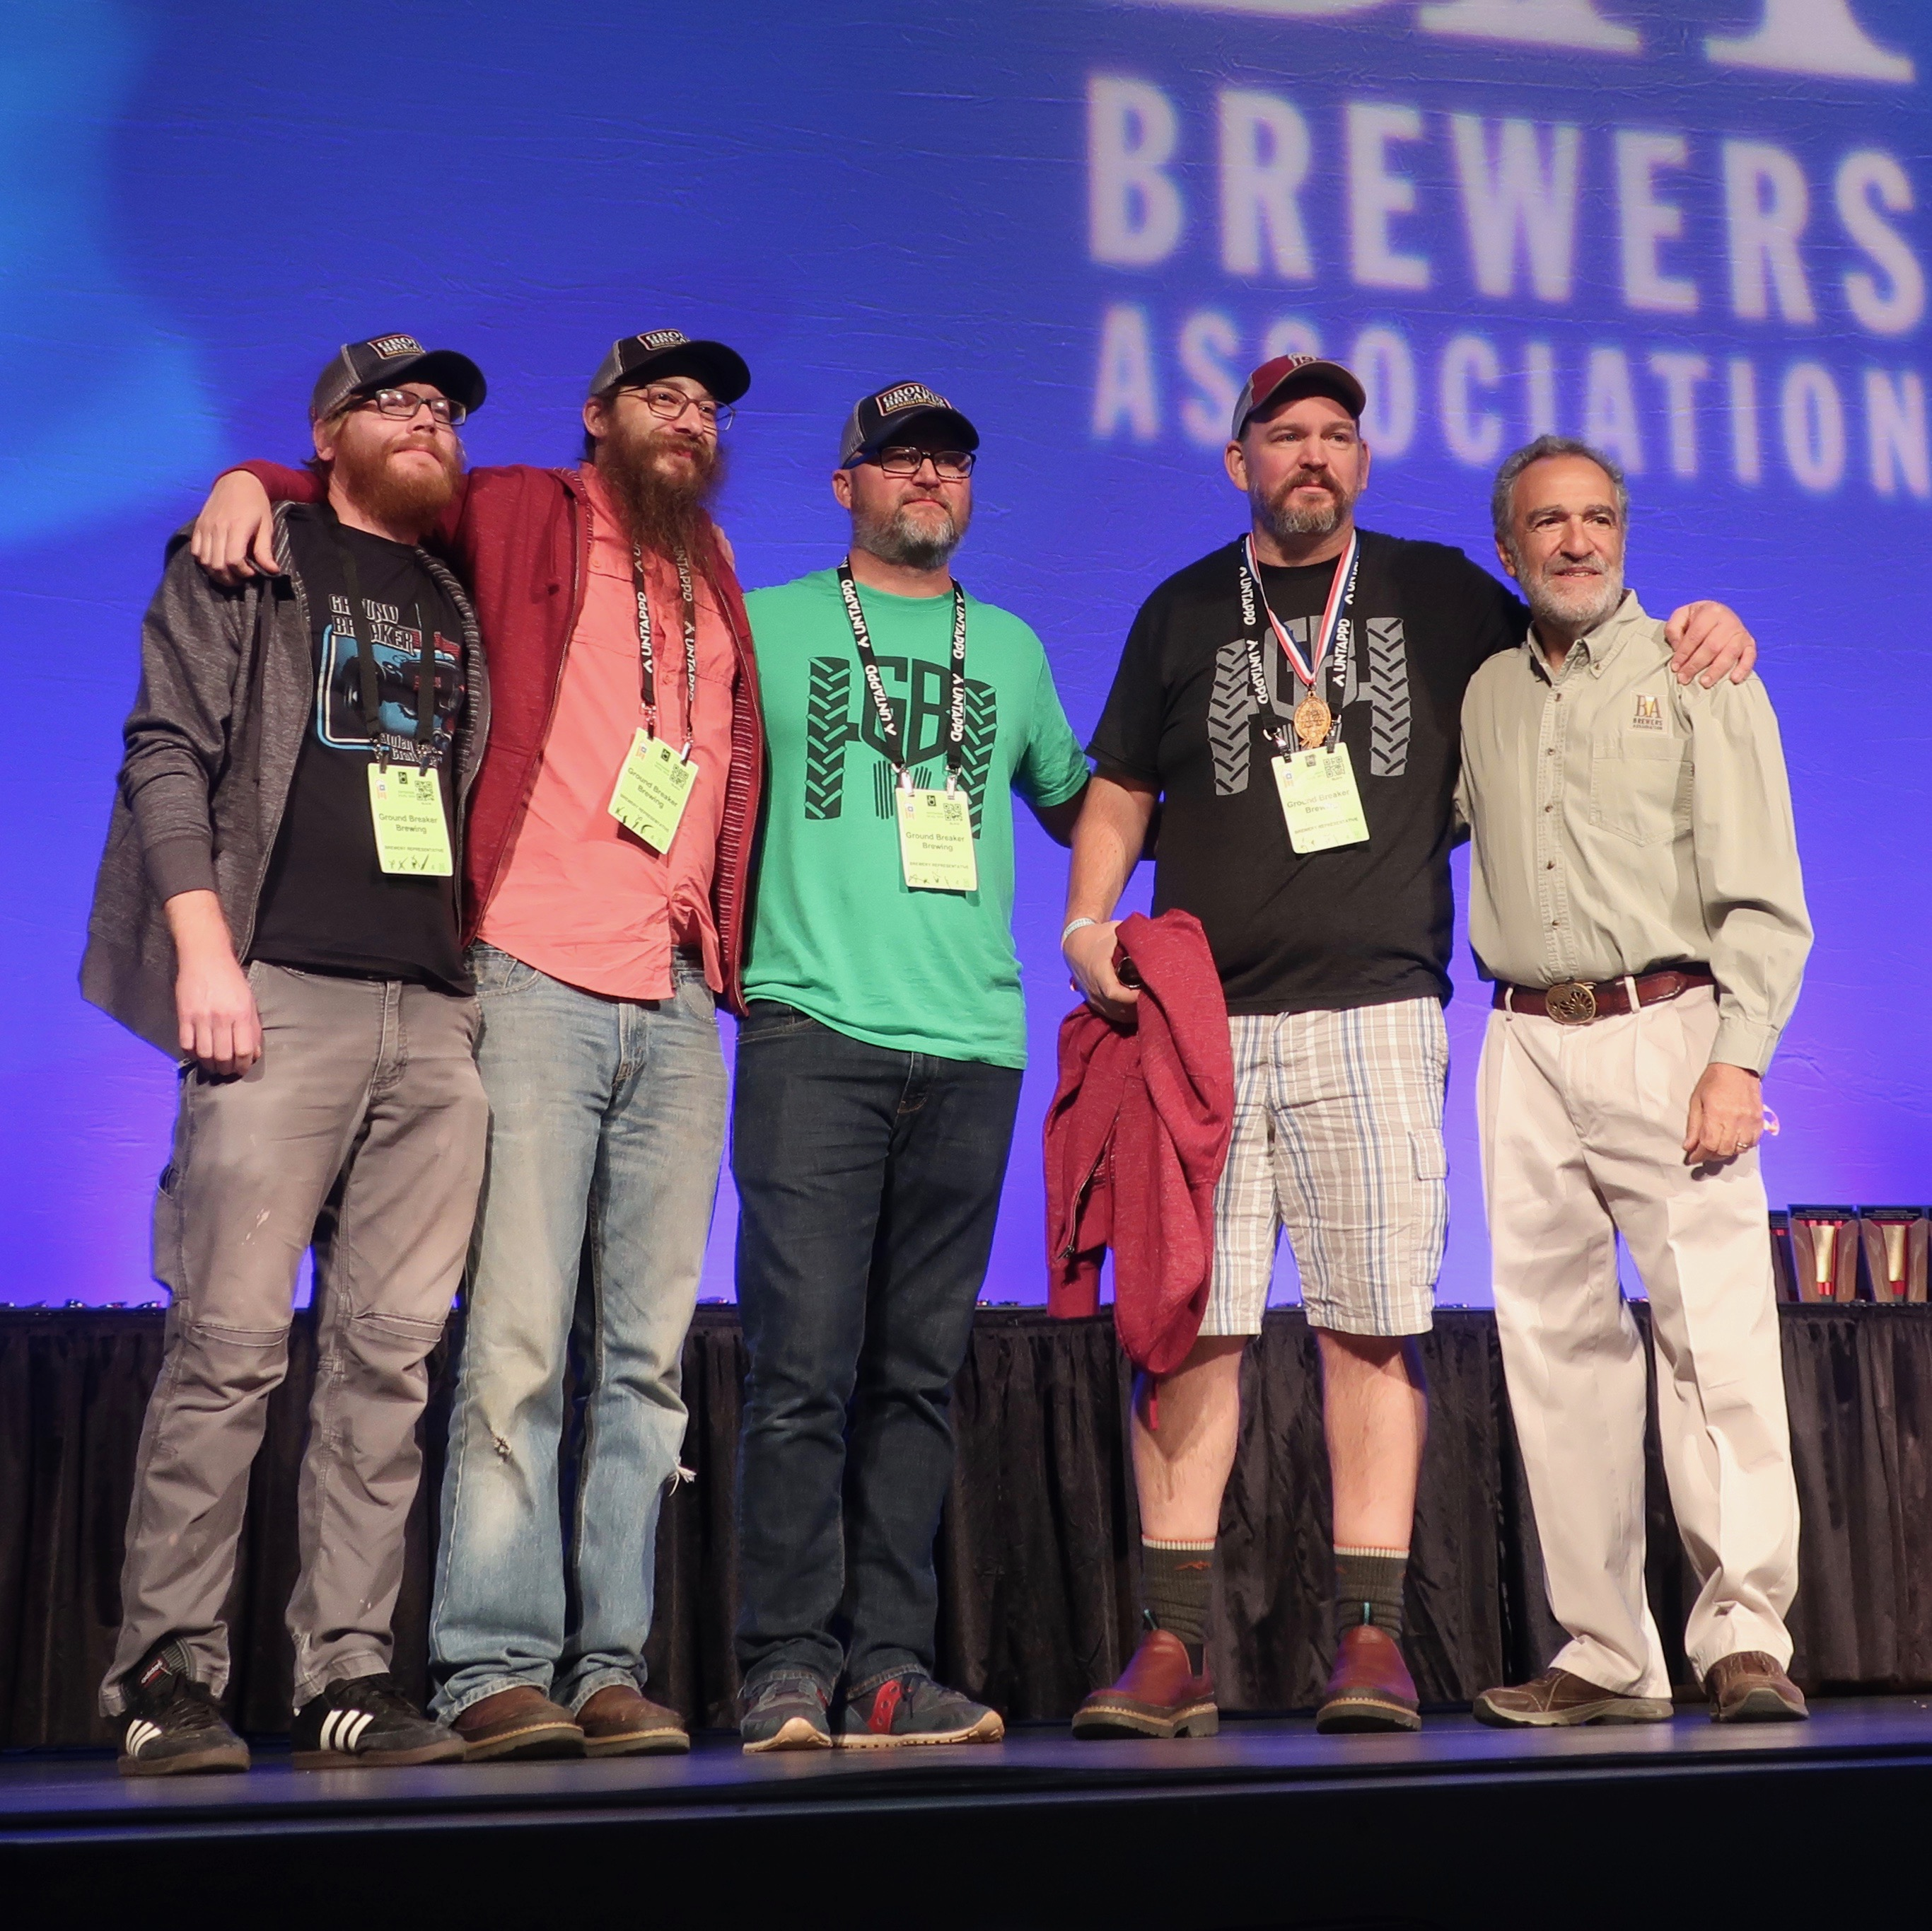 Ground Breaker Brewing continues its streak of medaling in the Gluten Free Category for seven consecutive years at the 2018 Great American Beer Festival.